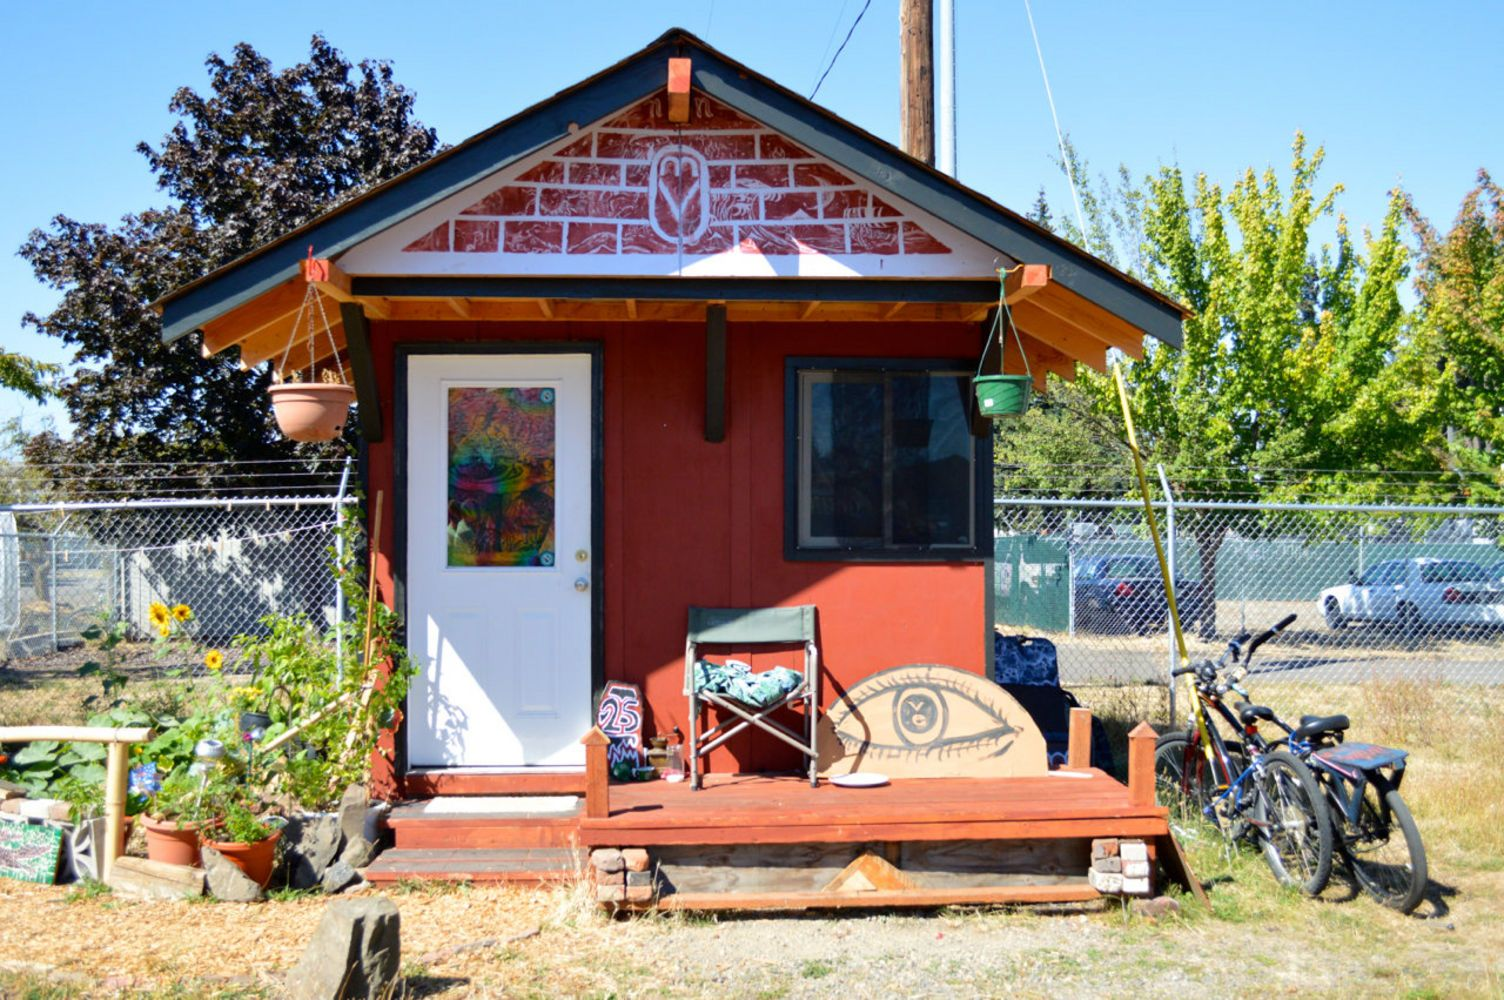 Tiny Houses For The Homeless Thrive In Eugene Would This Work In Portland Other Cities Photos And Video Tiny House Village Tiny House Oregon Living